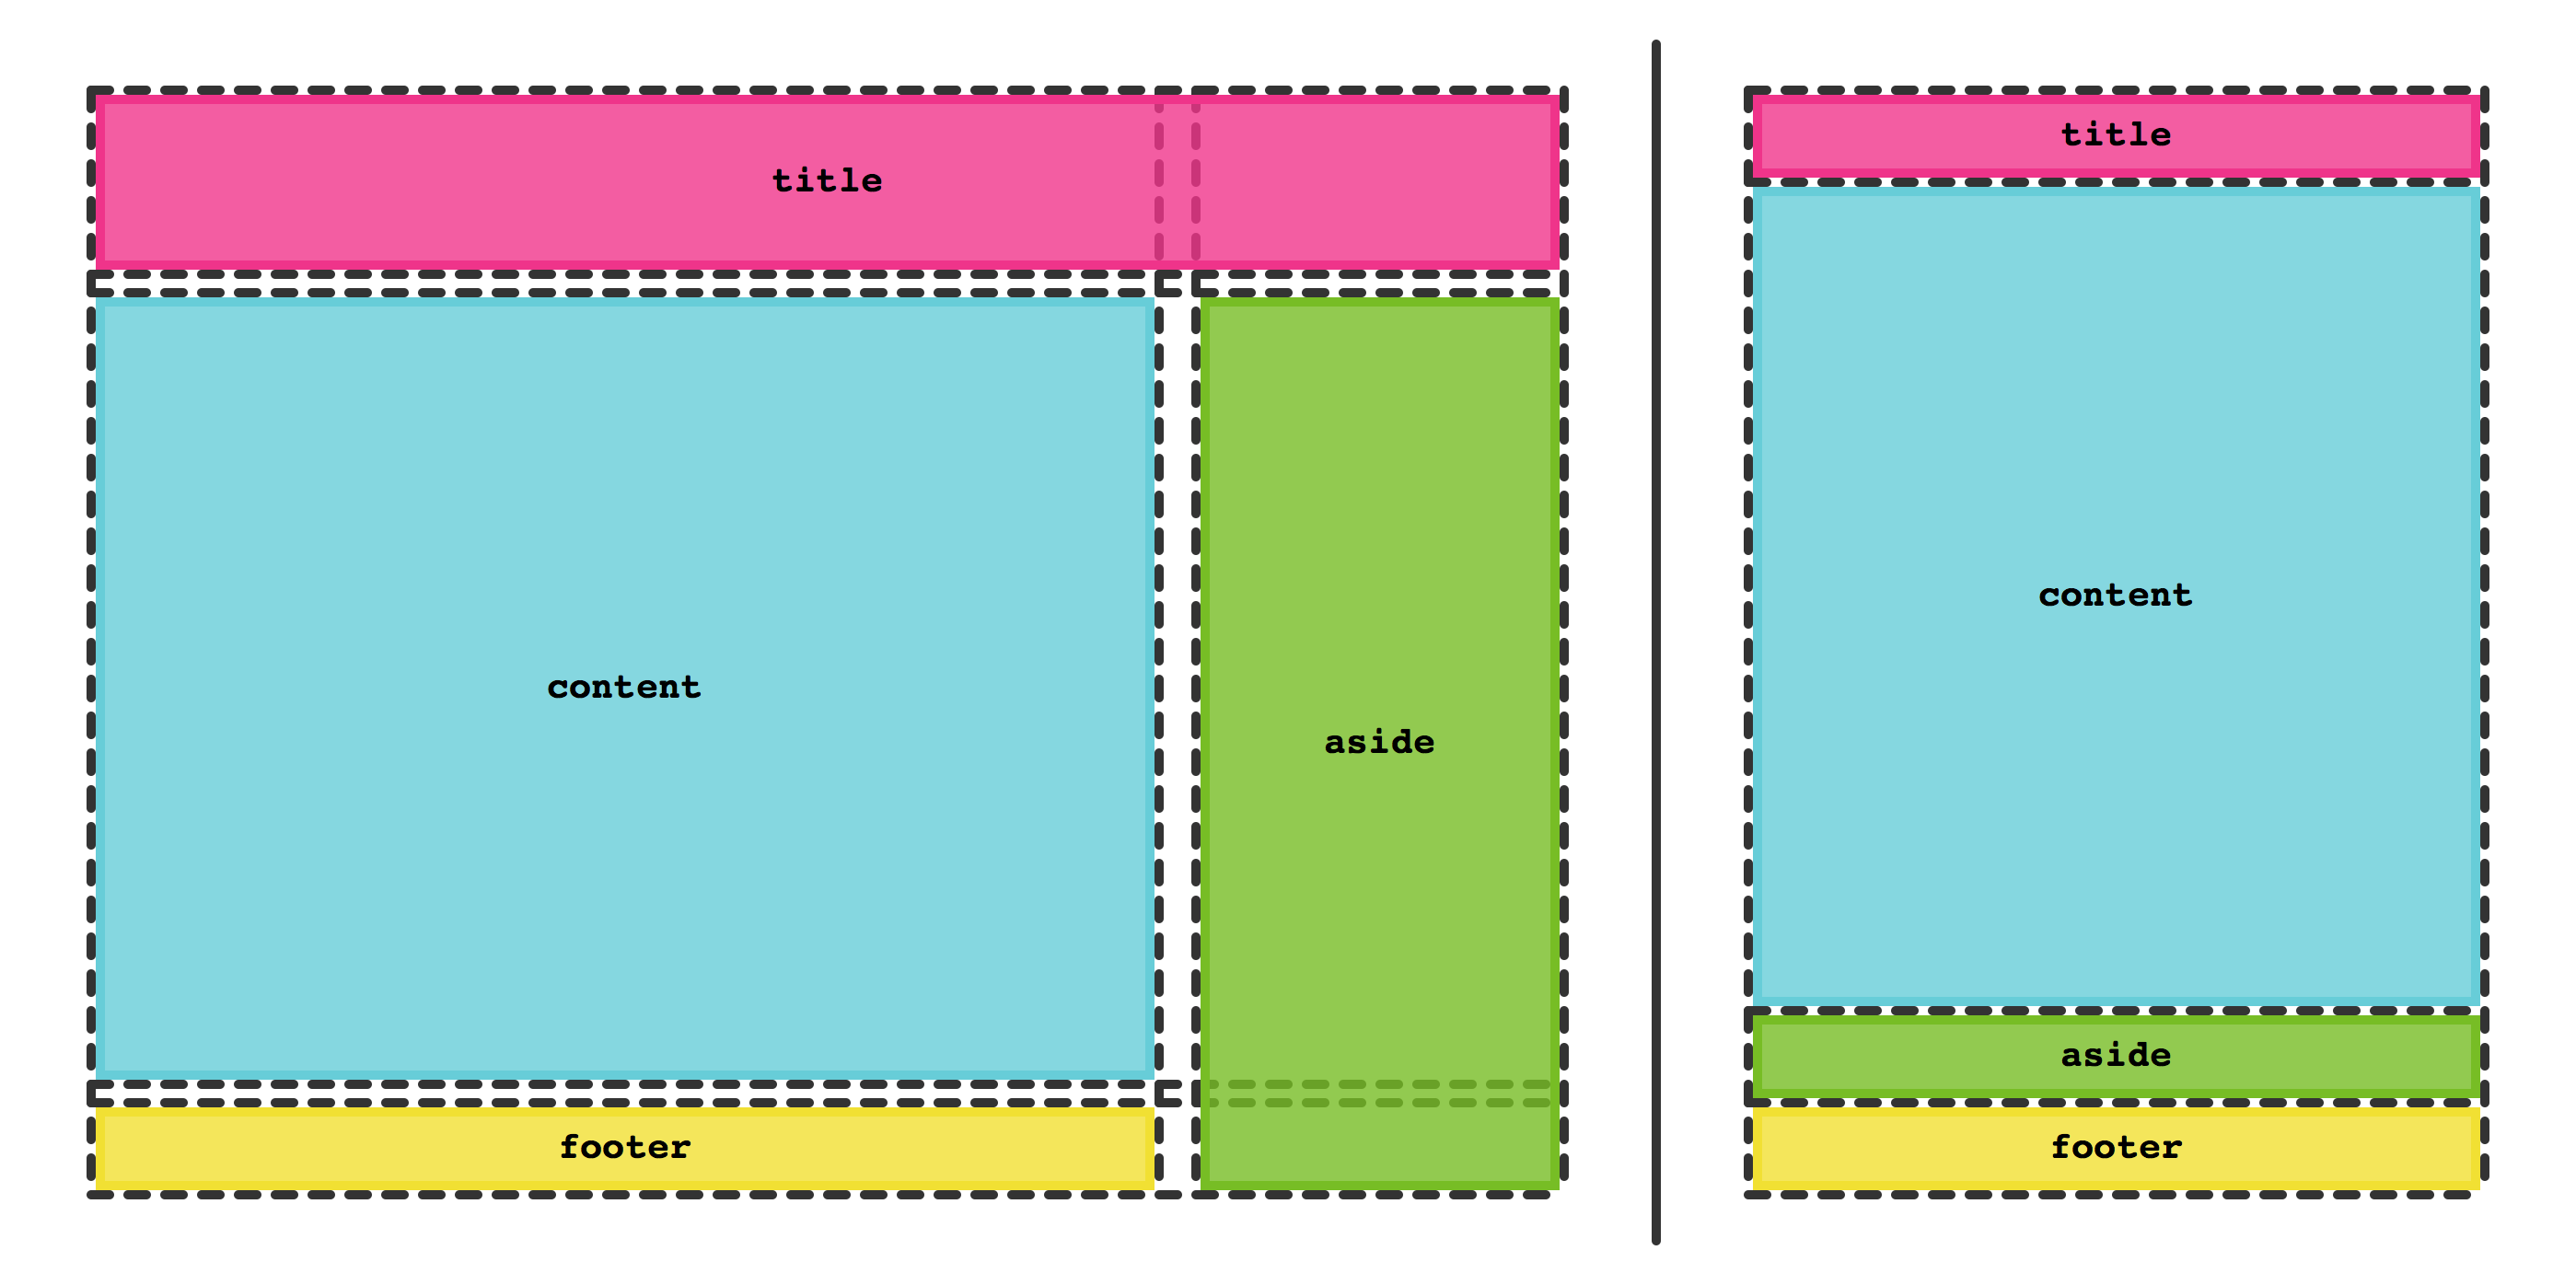 Jquery plugins to work with data presentation and grid layout - Css Grid Layout A New Layout Module For The Web Mar 9 2017 By